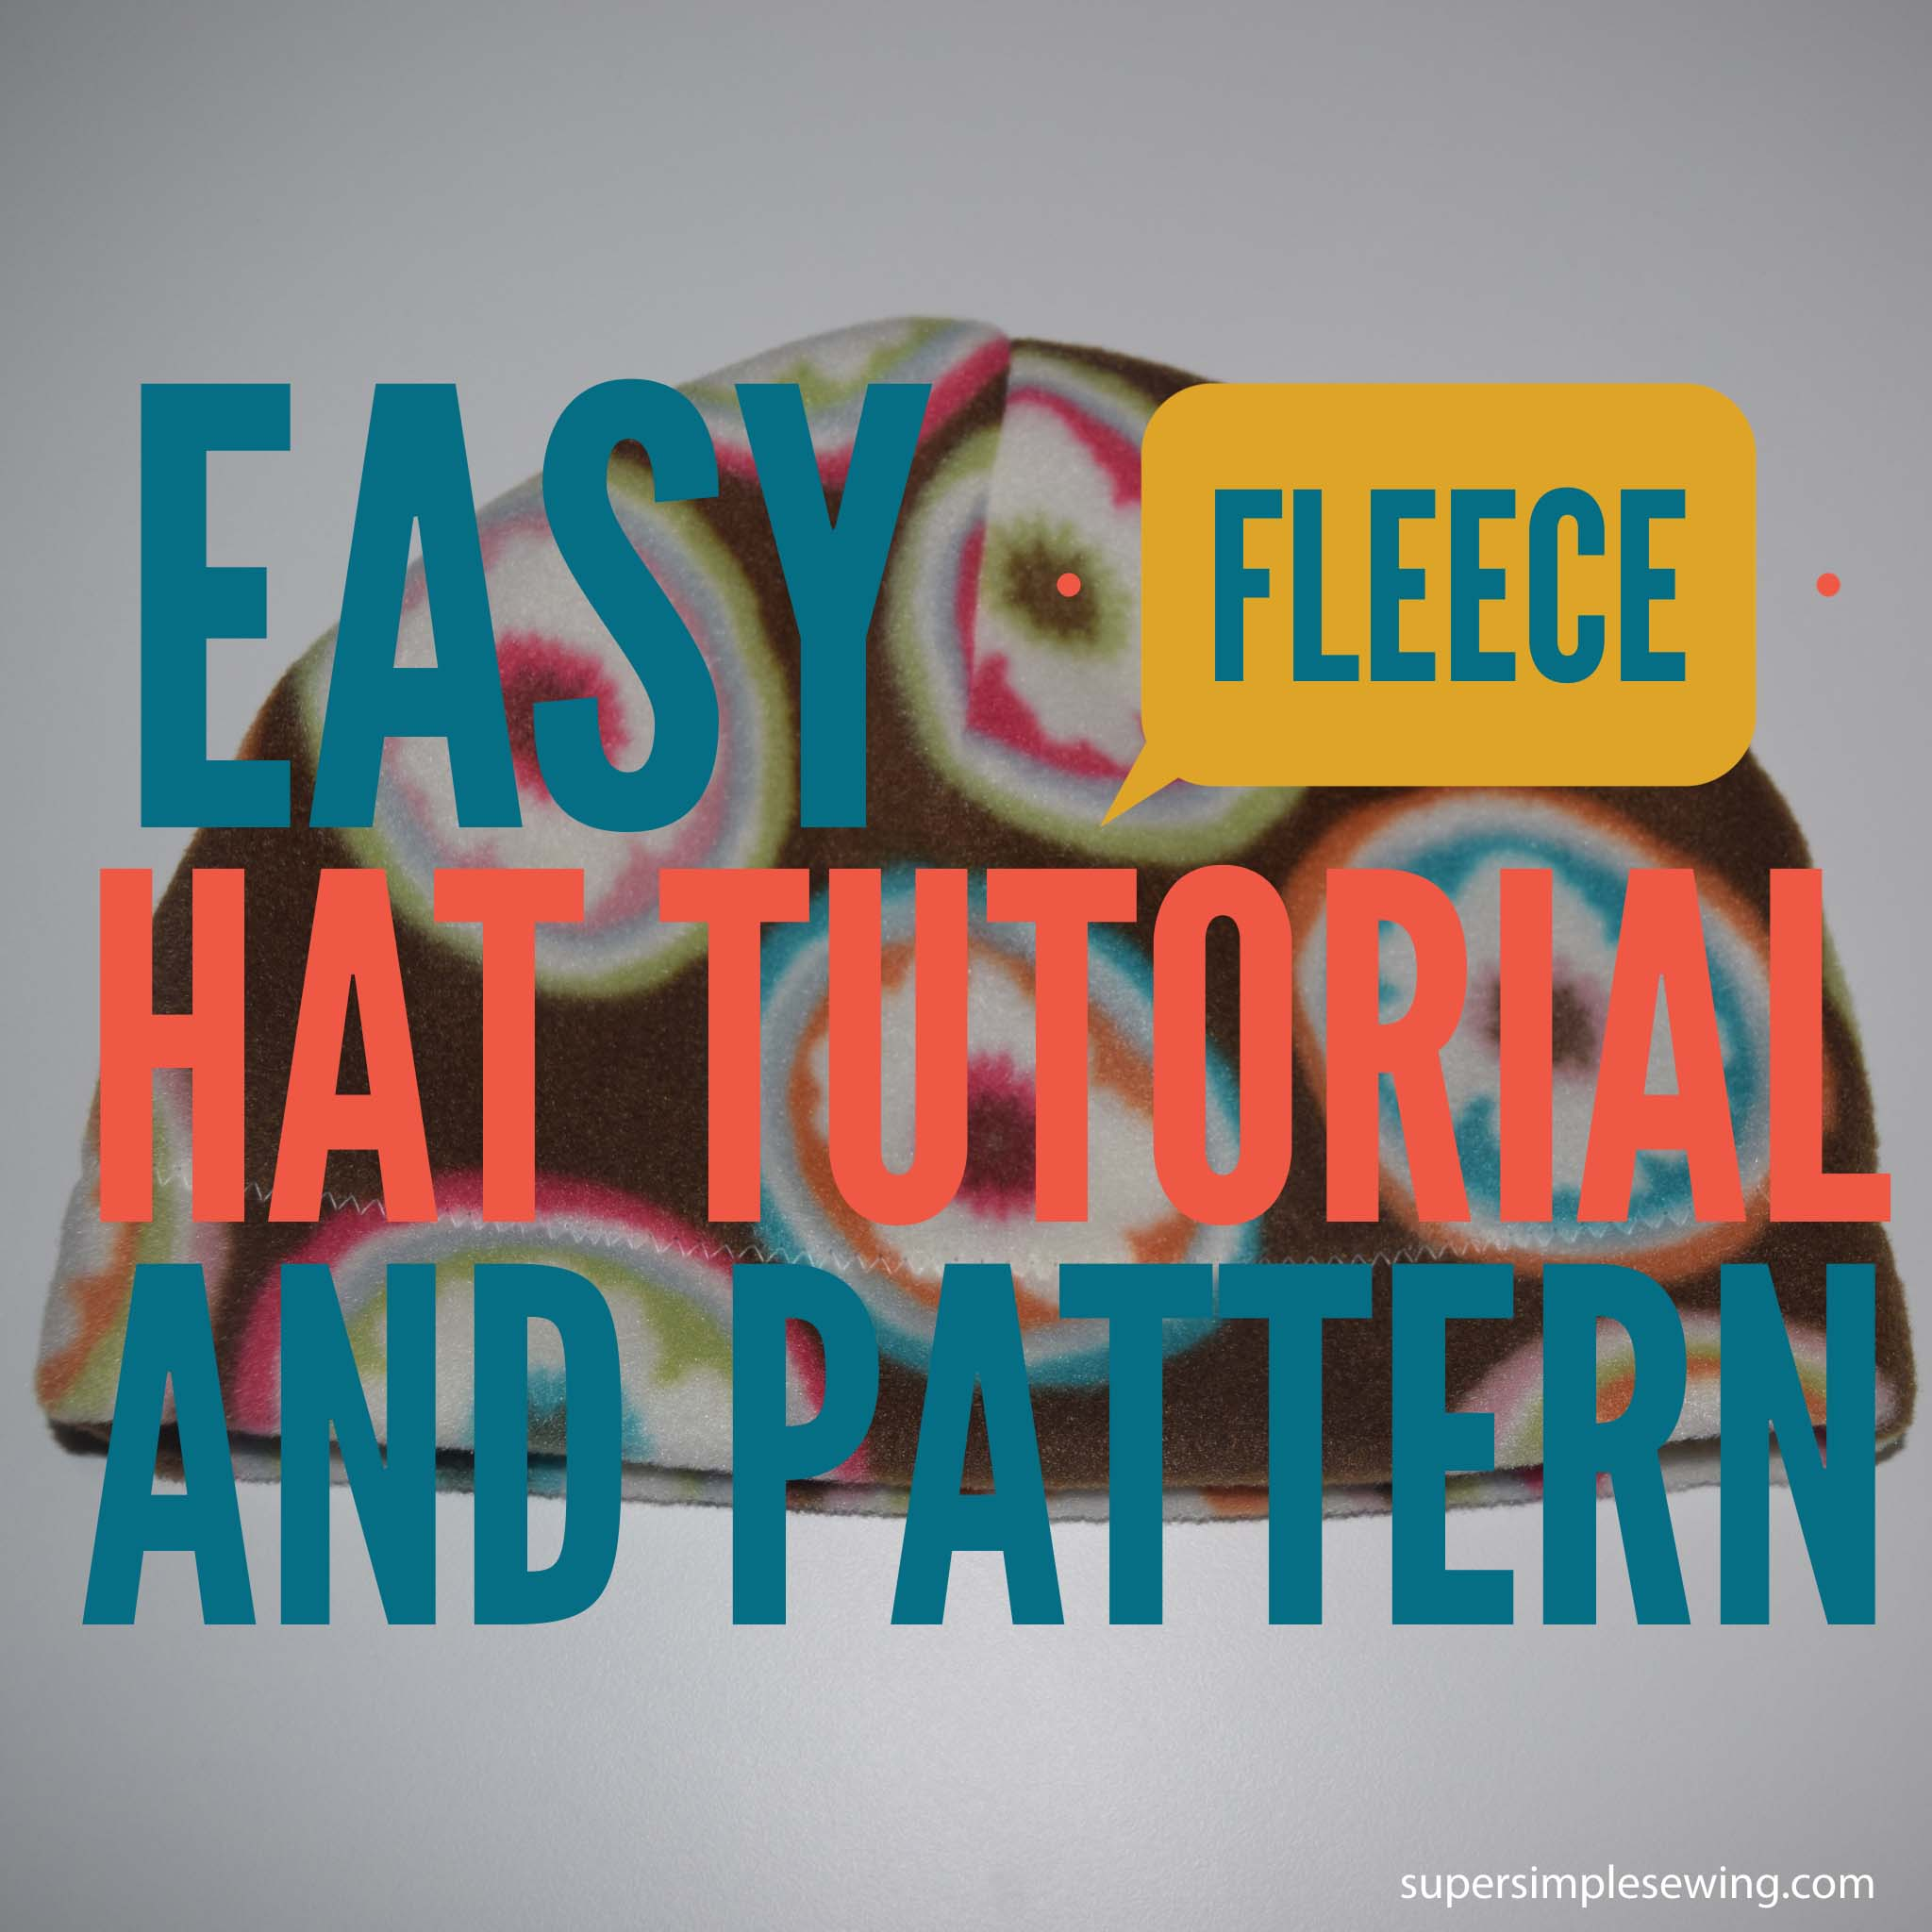 Easy Fleece Hat Tutorial and Pattern with Tips for Polar Fleece c7c4b600843